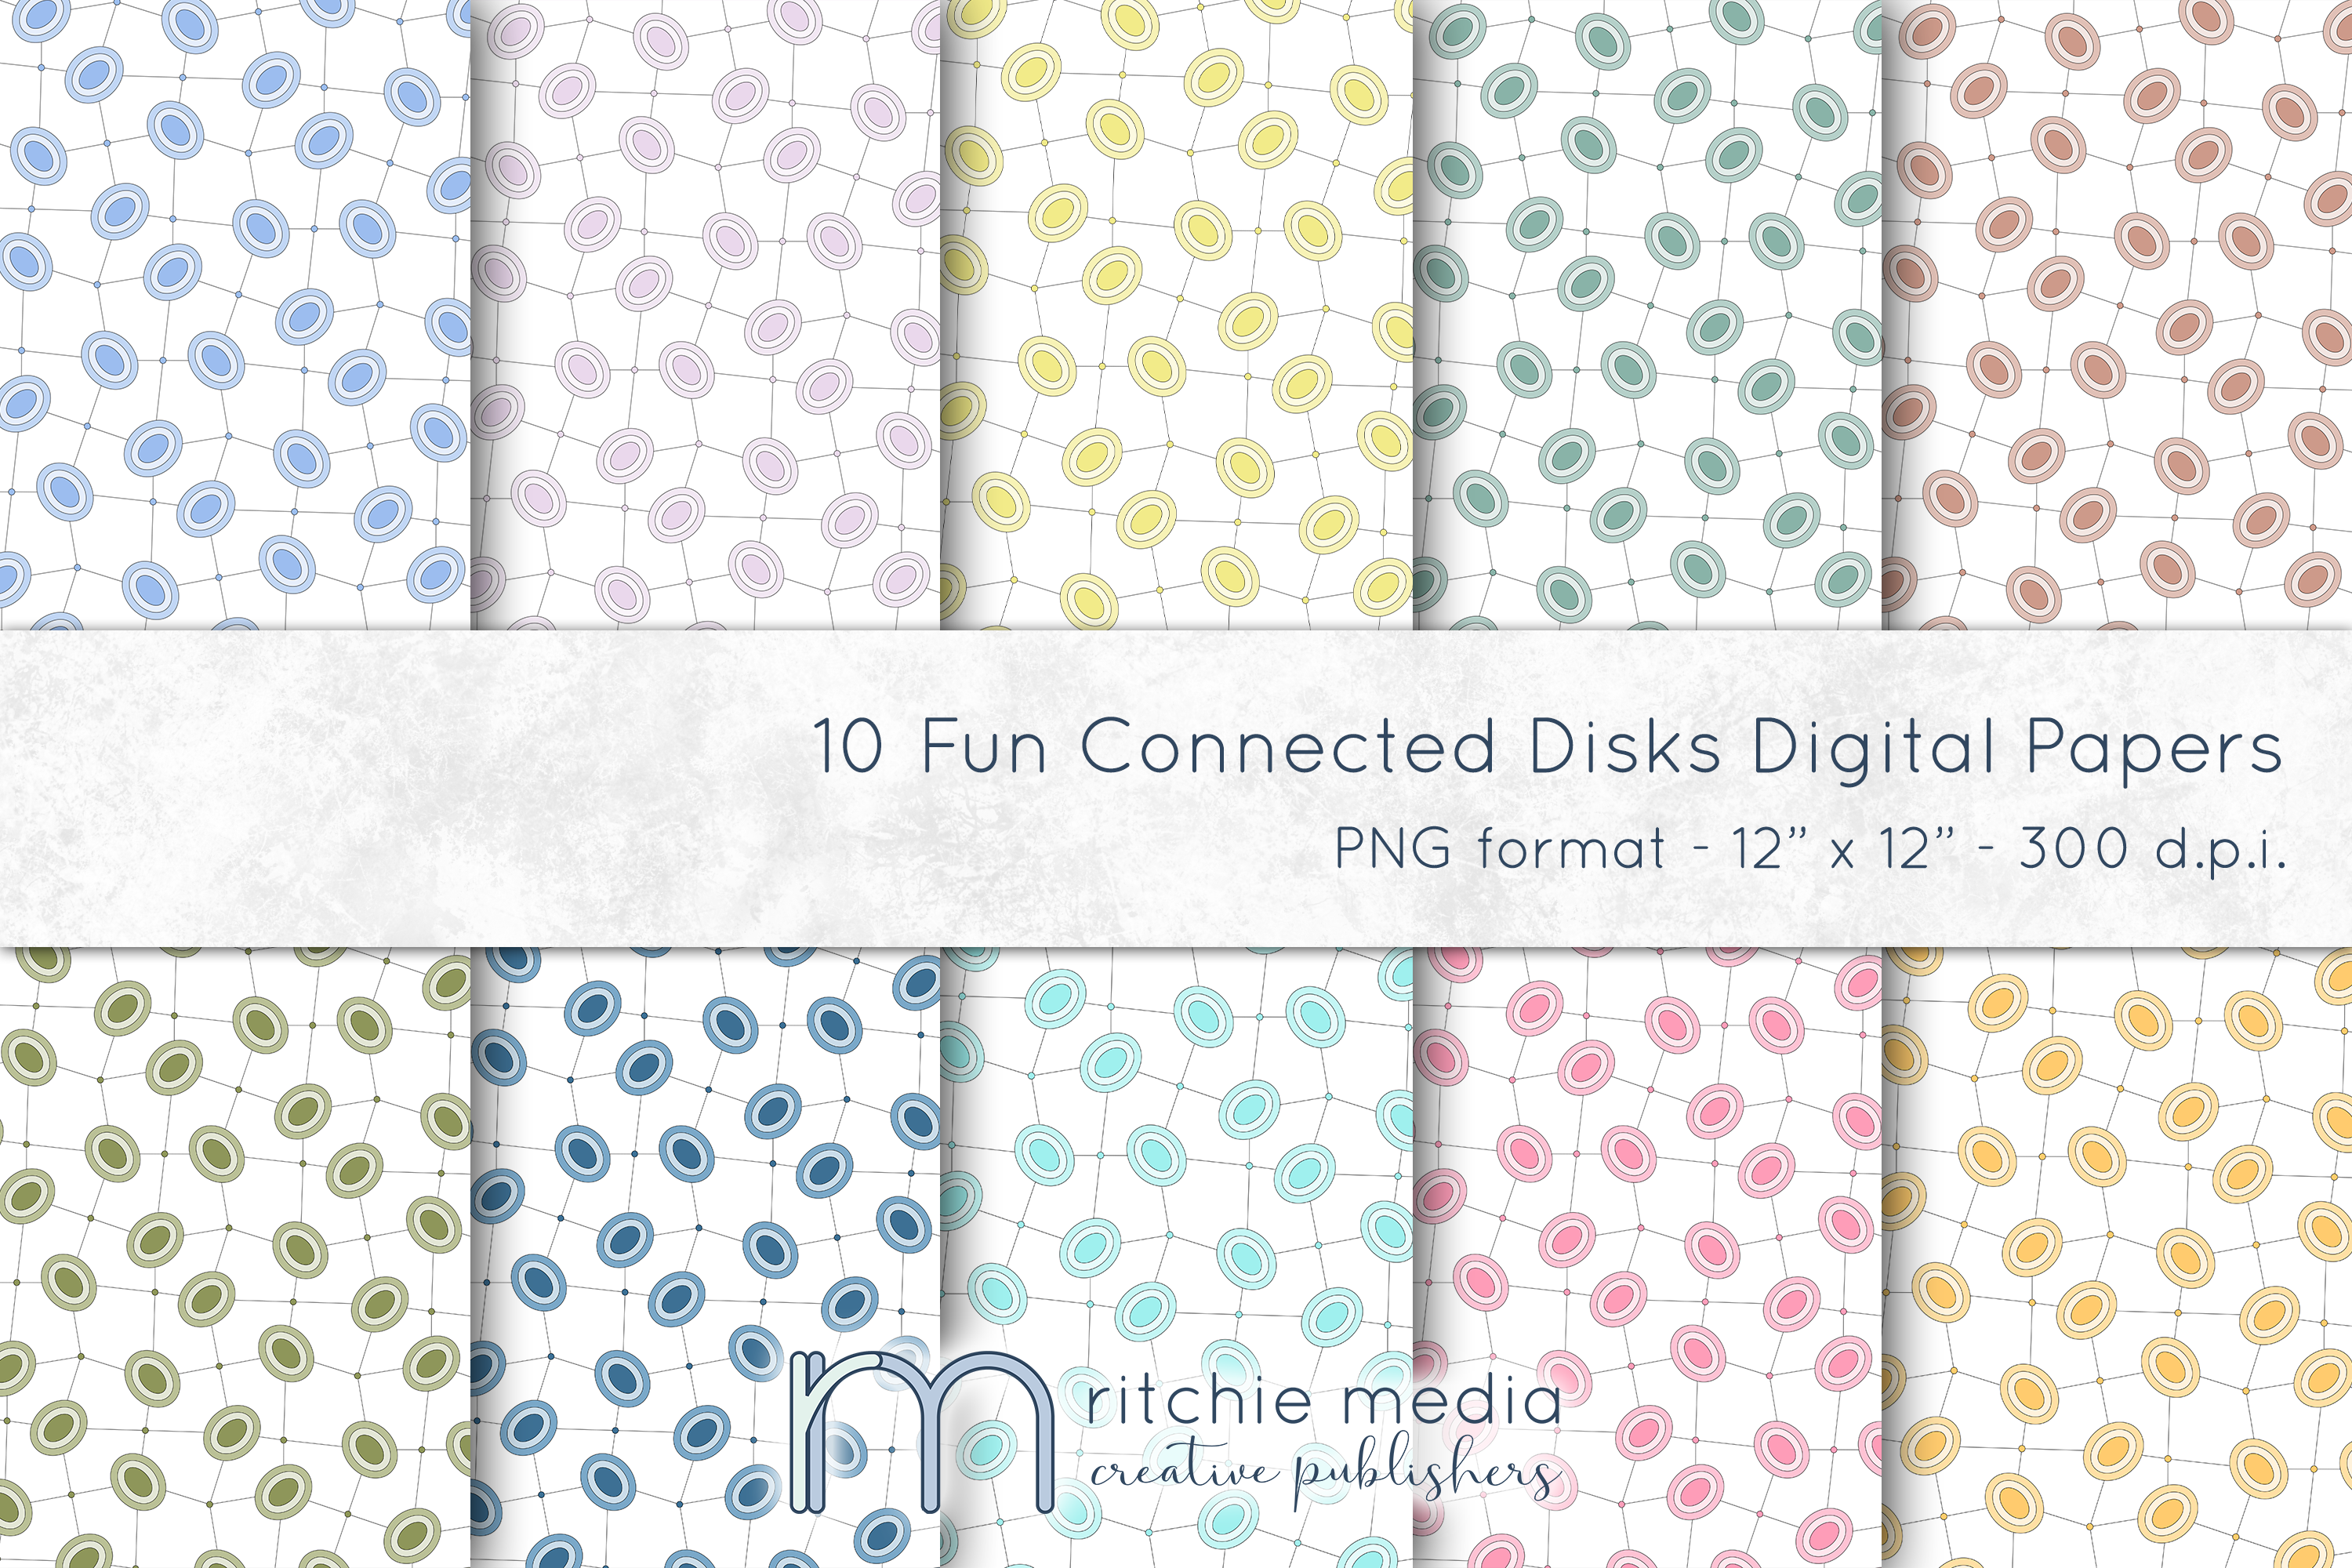 Fun Connected Disks Digital Papers